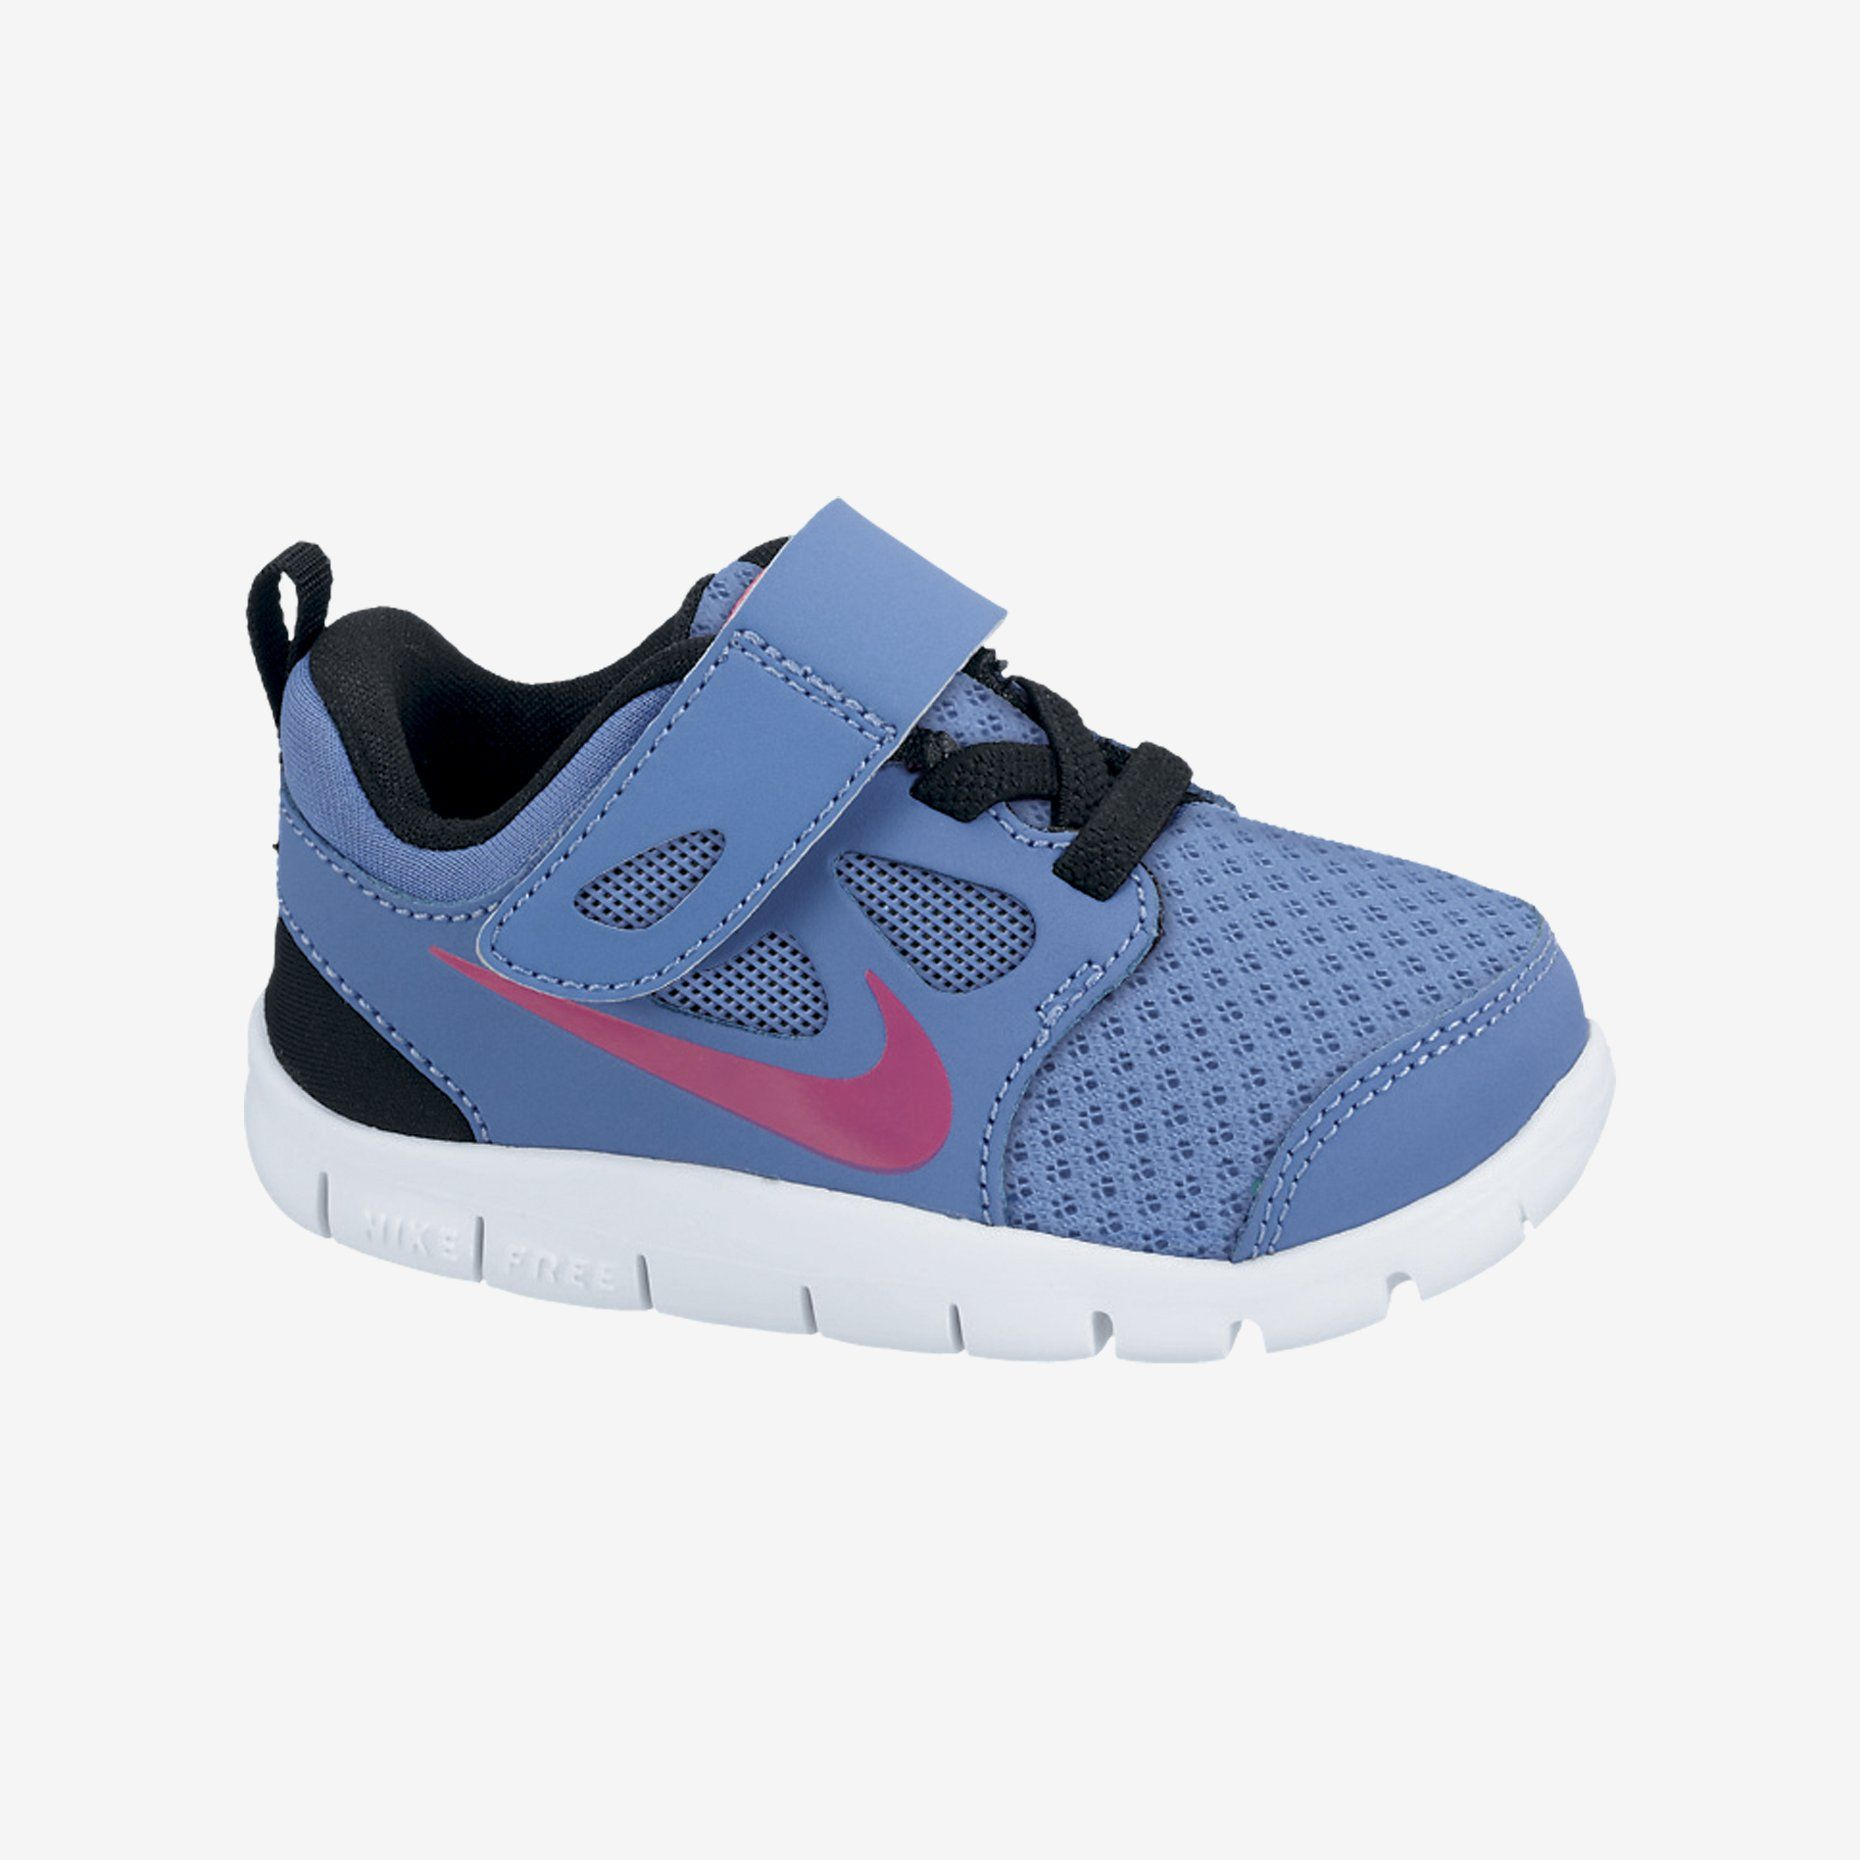 9713b7863b45 Nike Store Sweden. Nike Free 5.0 Infant Toddler Girls  Running Shoe ...